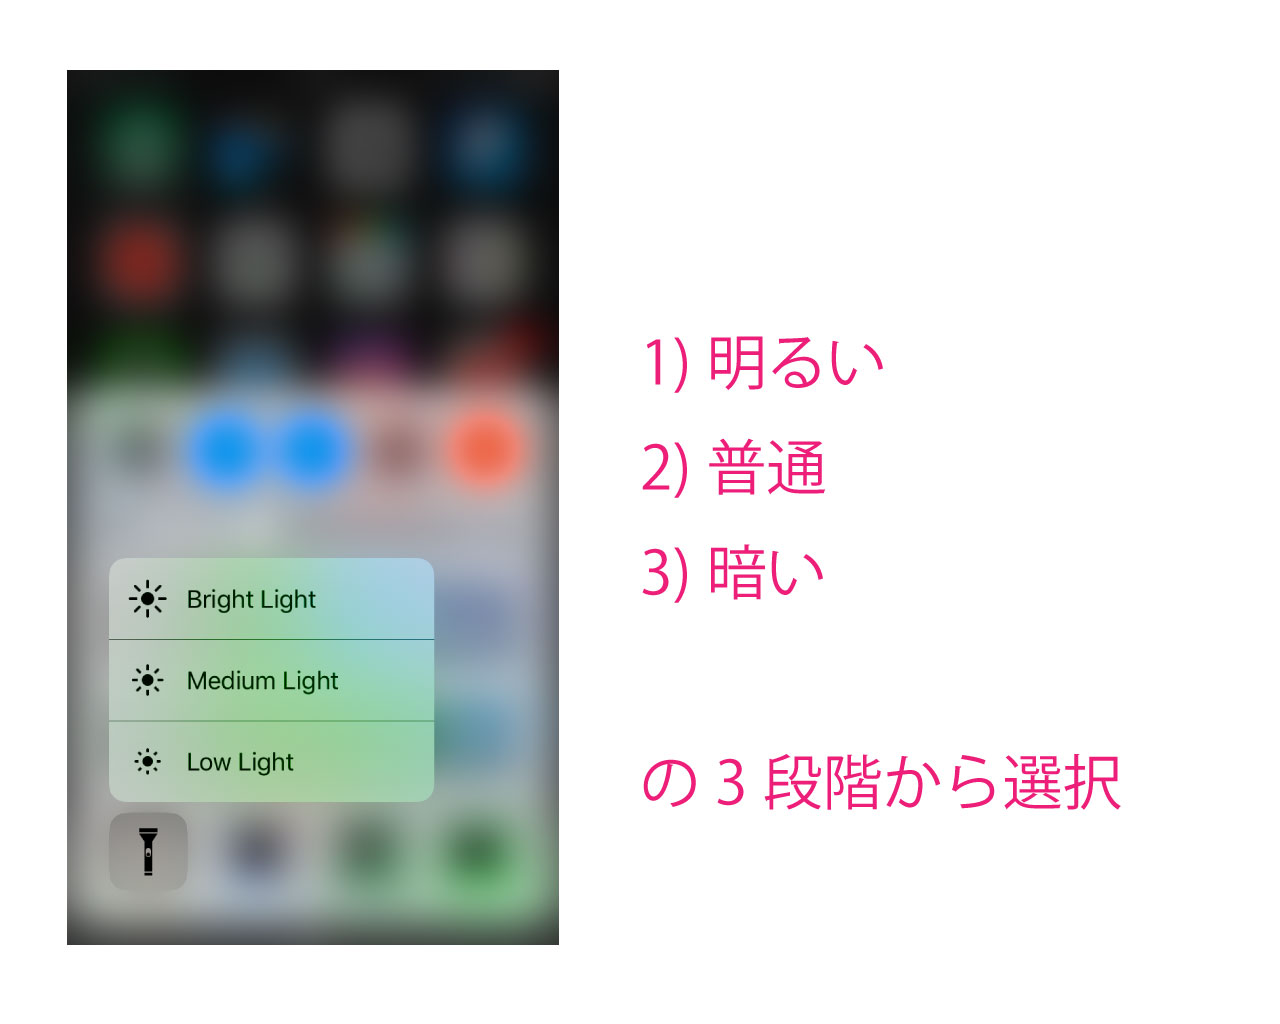 iphone-3dtouch-control-center-1